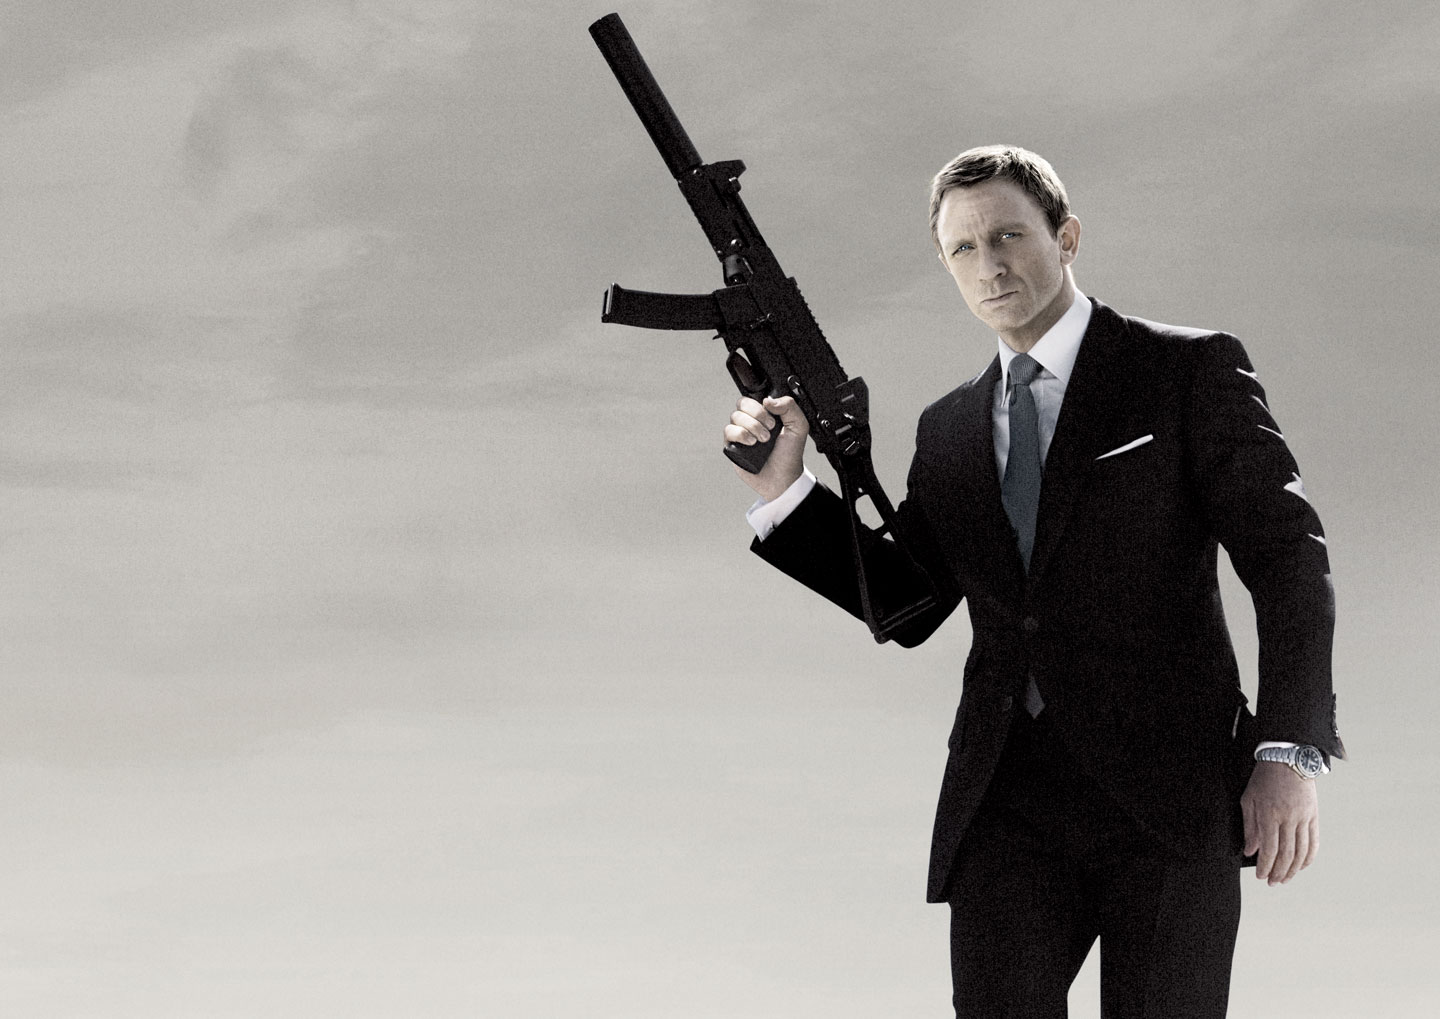 Quantum Of Solace header image